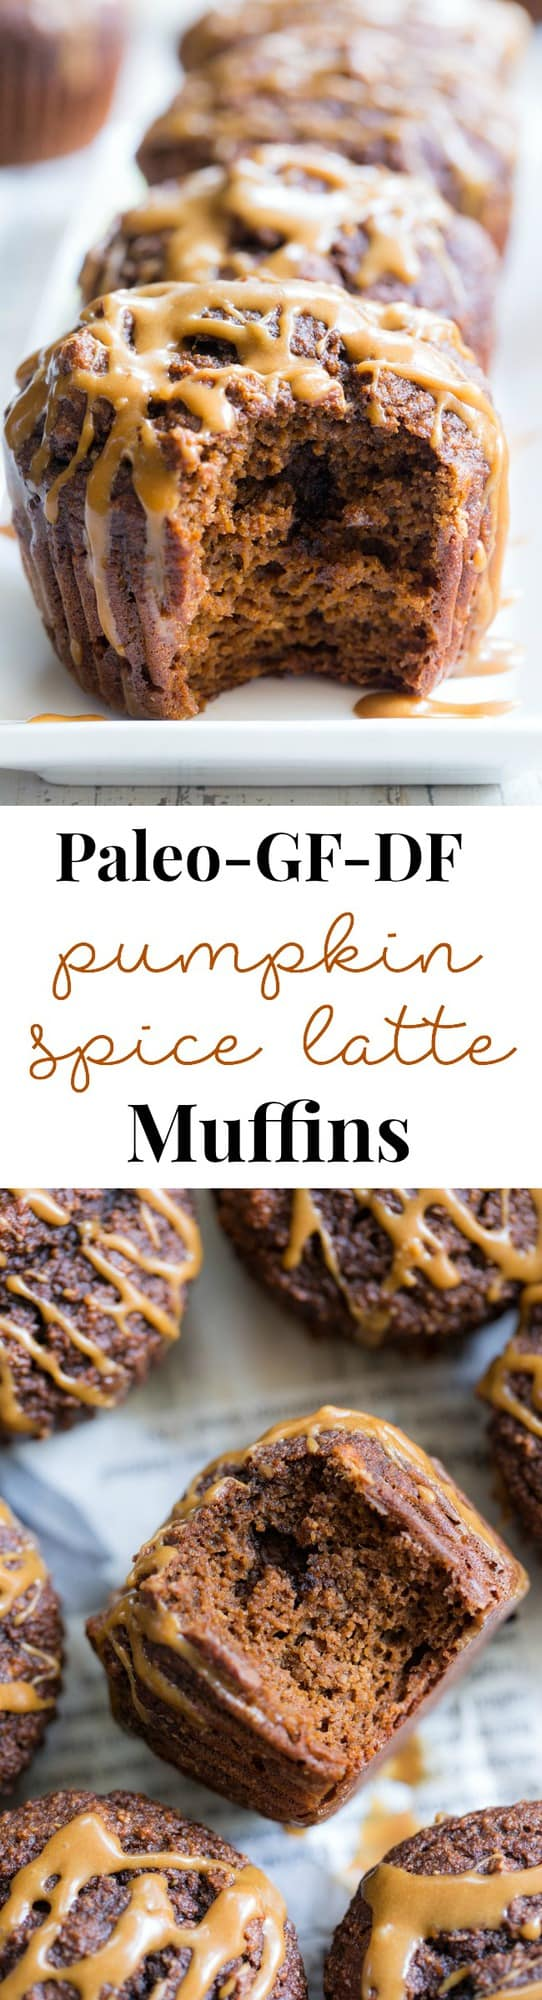 """These Pumpkin Spice Latte Muffins have everything you love about your favorite fall drink, in muffin form! Fluffy, moist muffins packed with pumpkin pie spice and espresso powder drizzled with a dairy-free """"latte"""" icing. They're gluten-free, dairy free, paleo, and one of my favorite baking recipes this fall! Paleo dessert. Paleo pumpkin recipes. Paleo baking. Paleo pumpkin muffins. Pumpkin muffins. Gluten free pumpkin muffins. Healthy pumpkin muffins."""